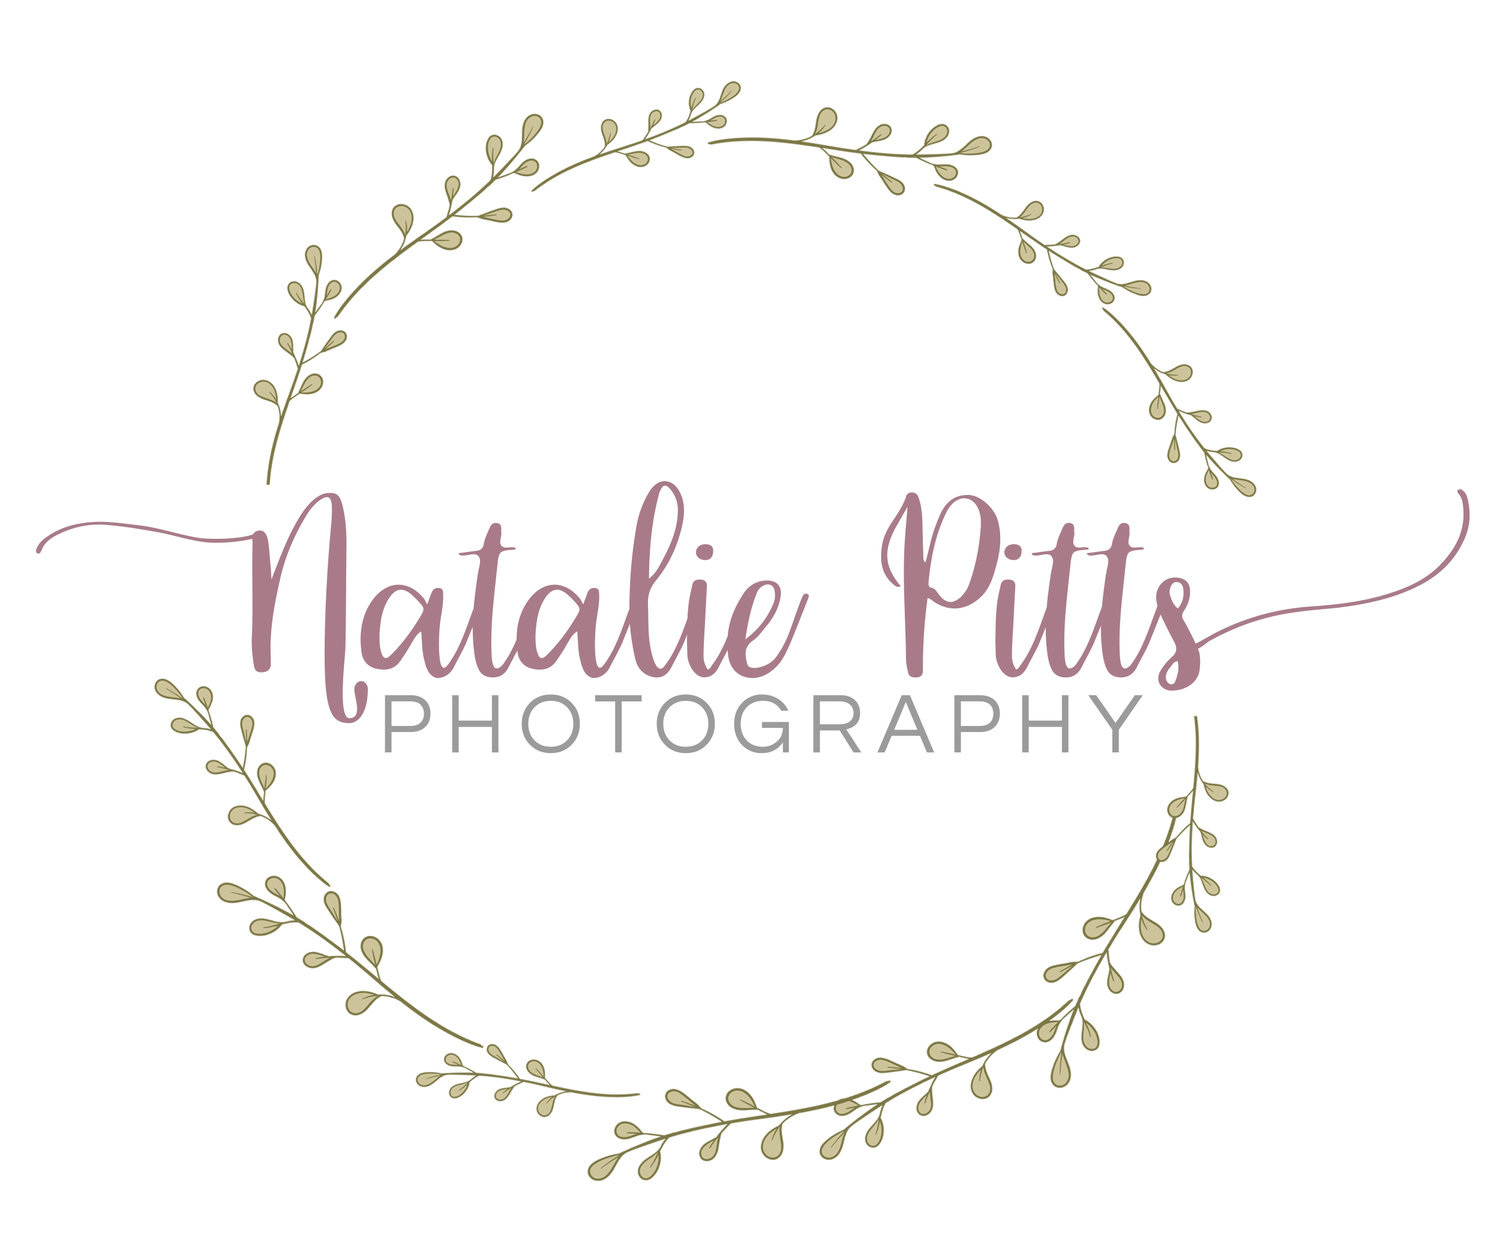 Natalie Pitts Photography